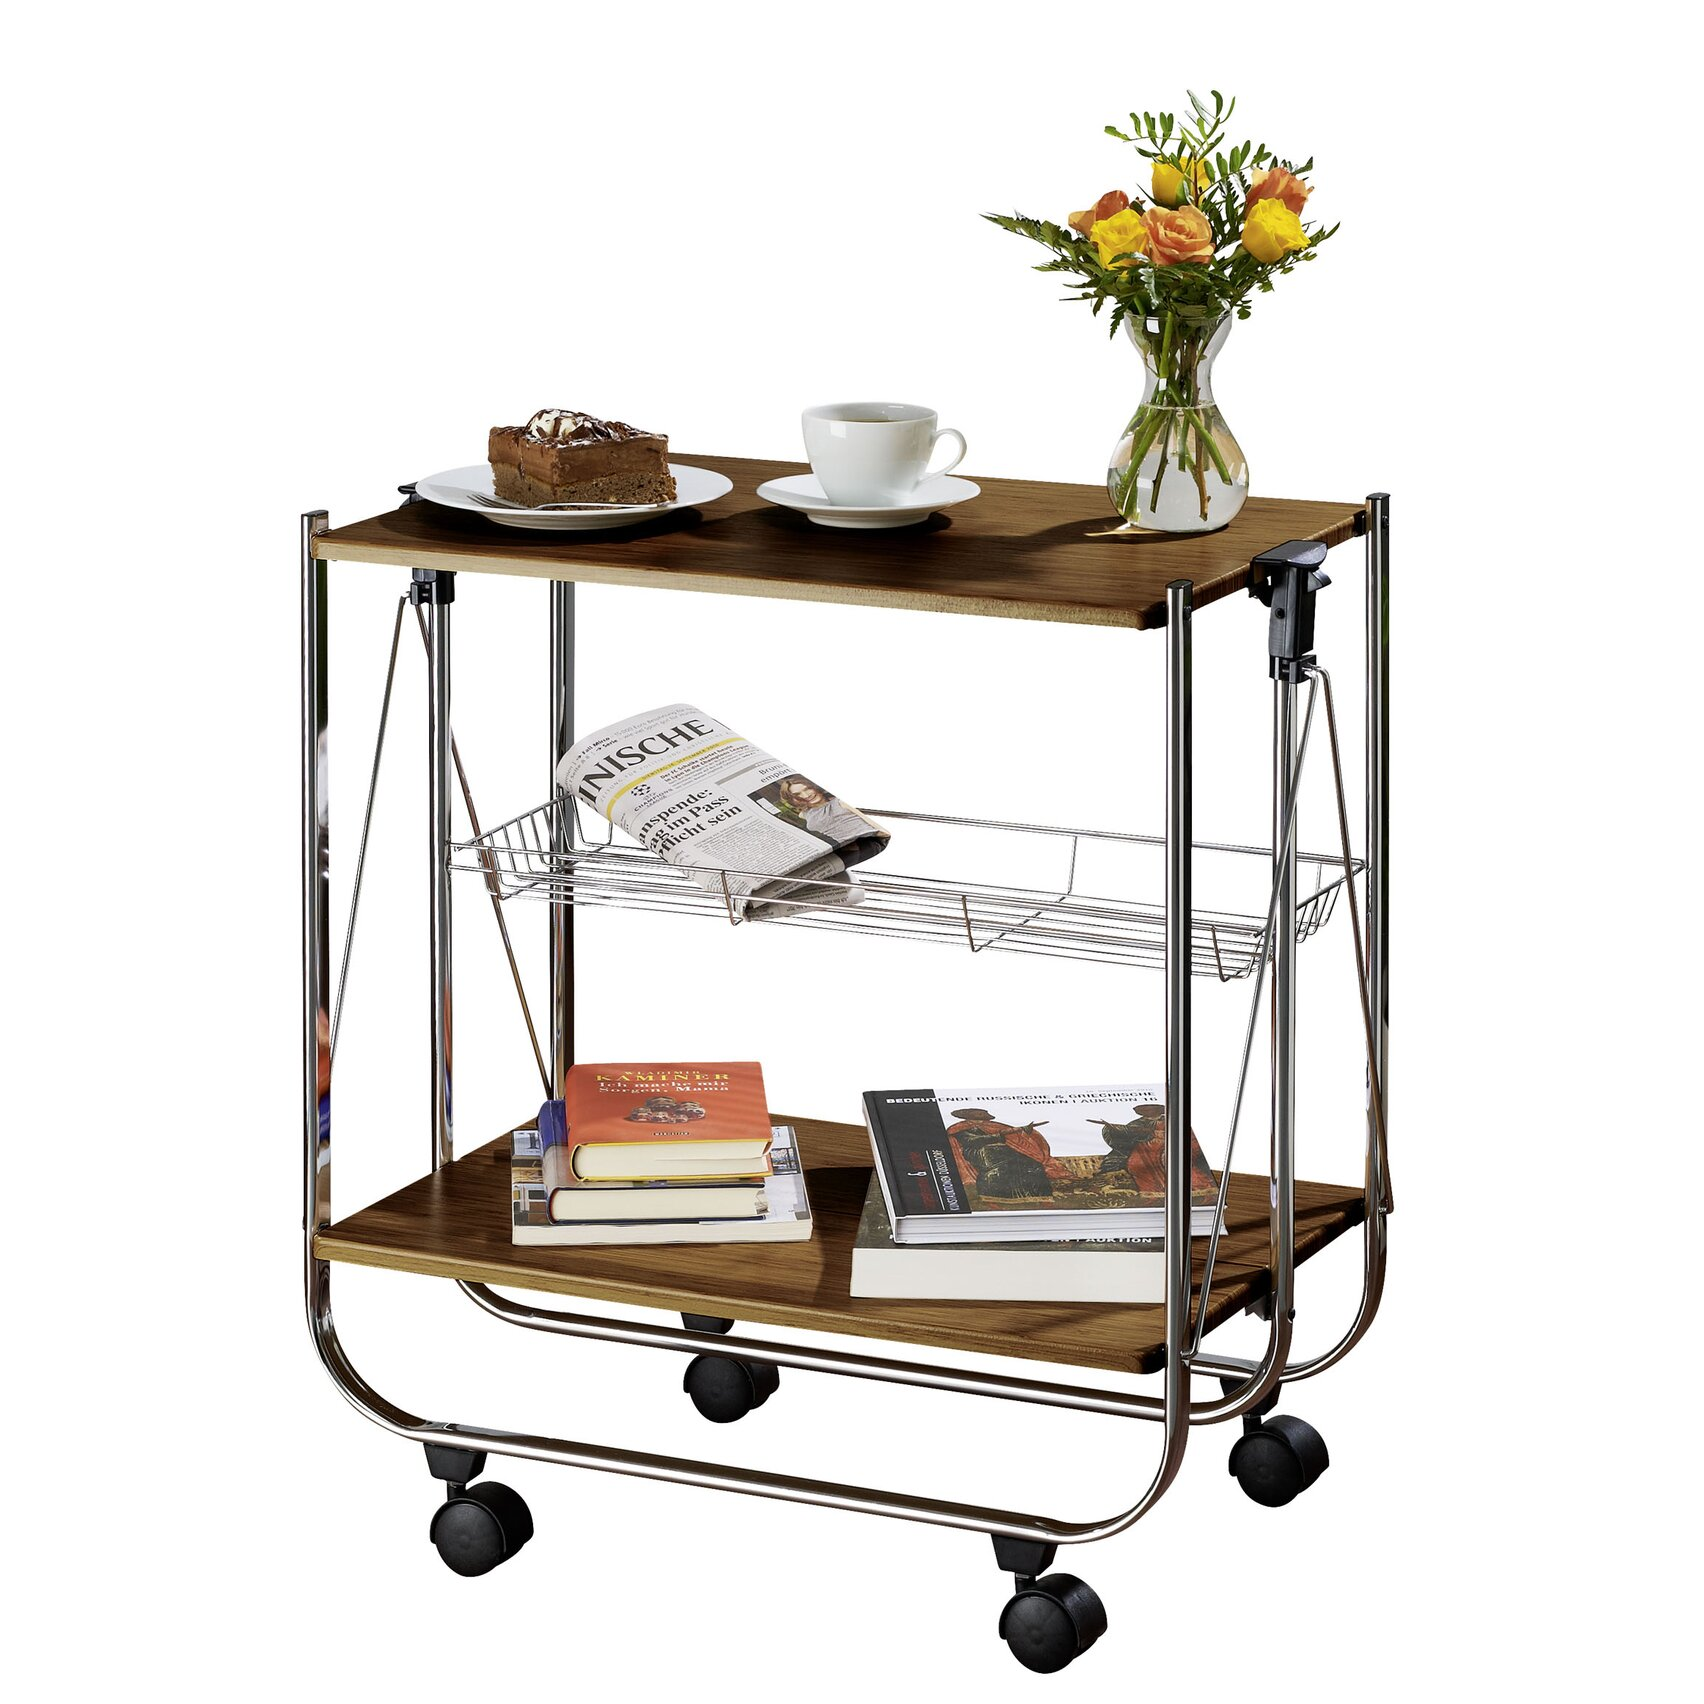 Wenko Inc Dinett Catering Trolley Serving Cart Wayfair